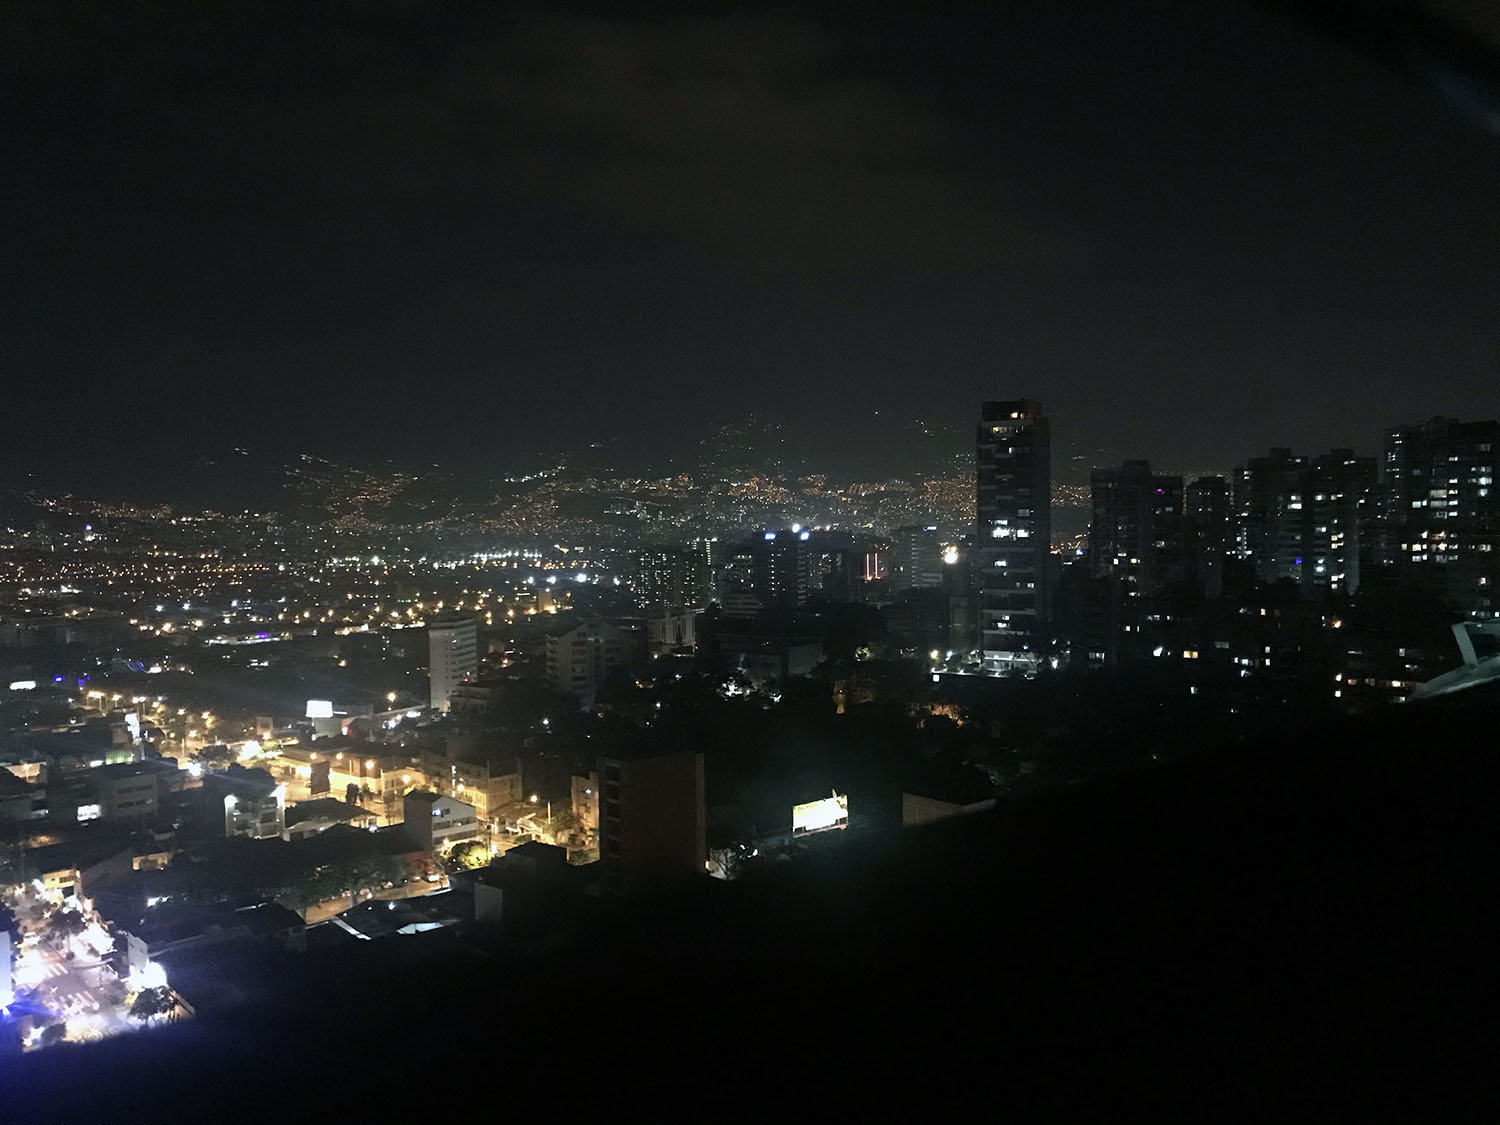 View of the city at night from rooftop bar